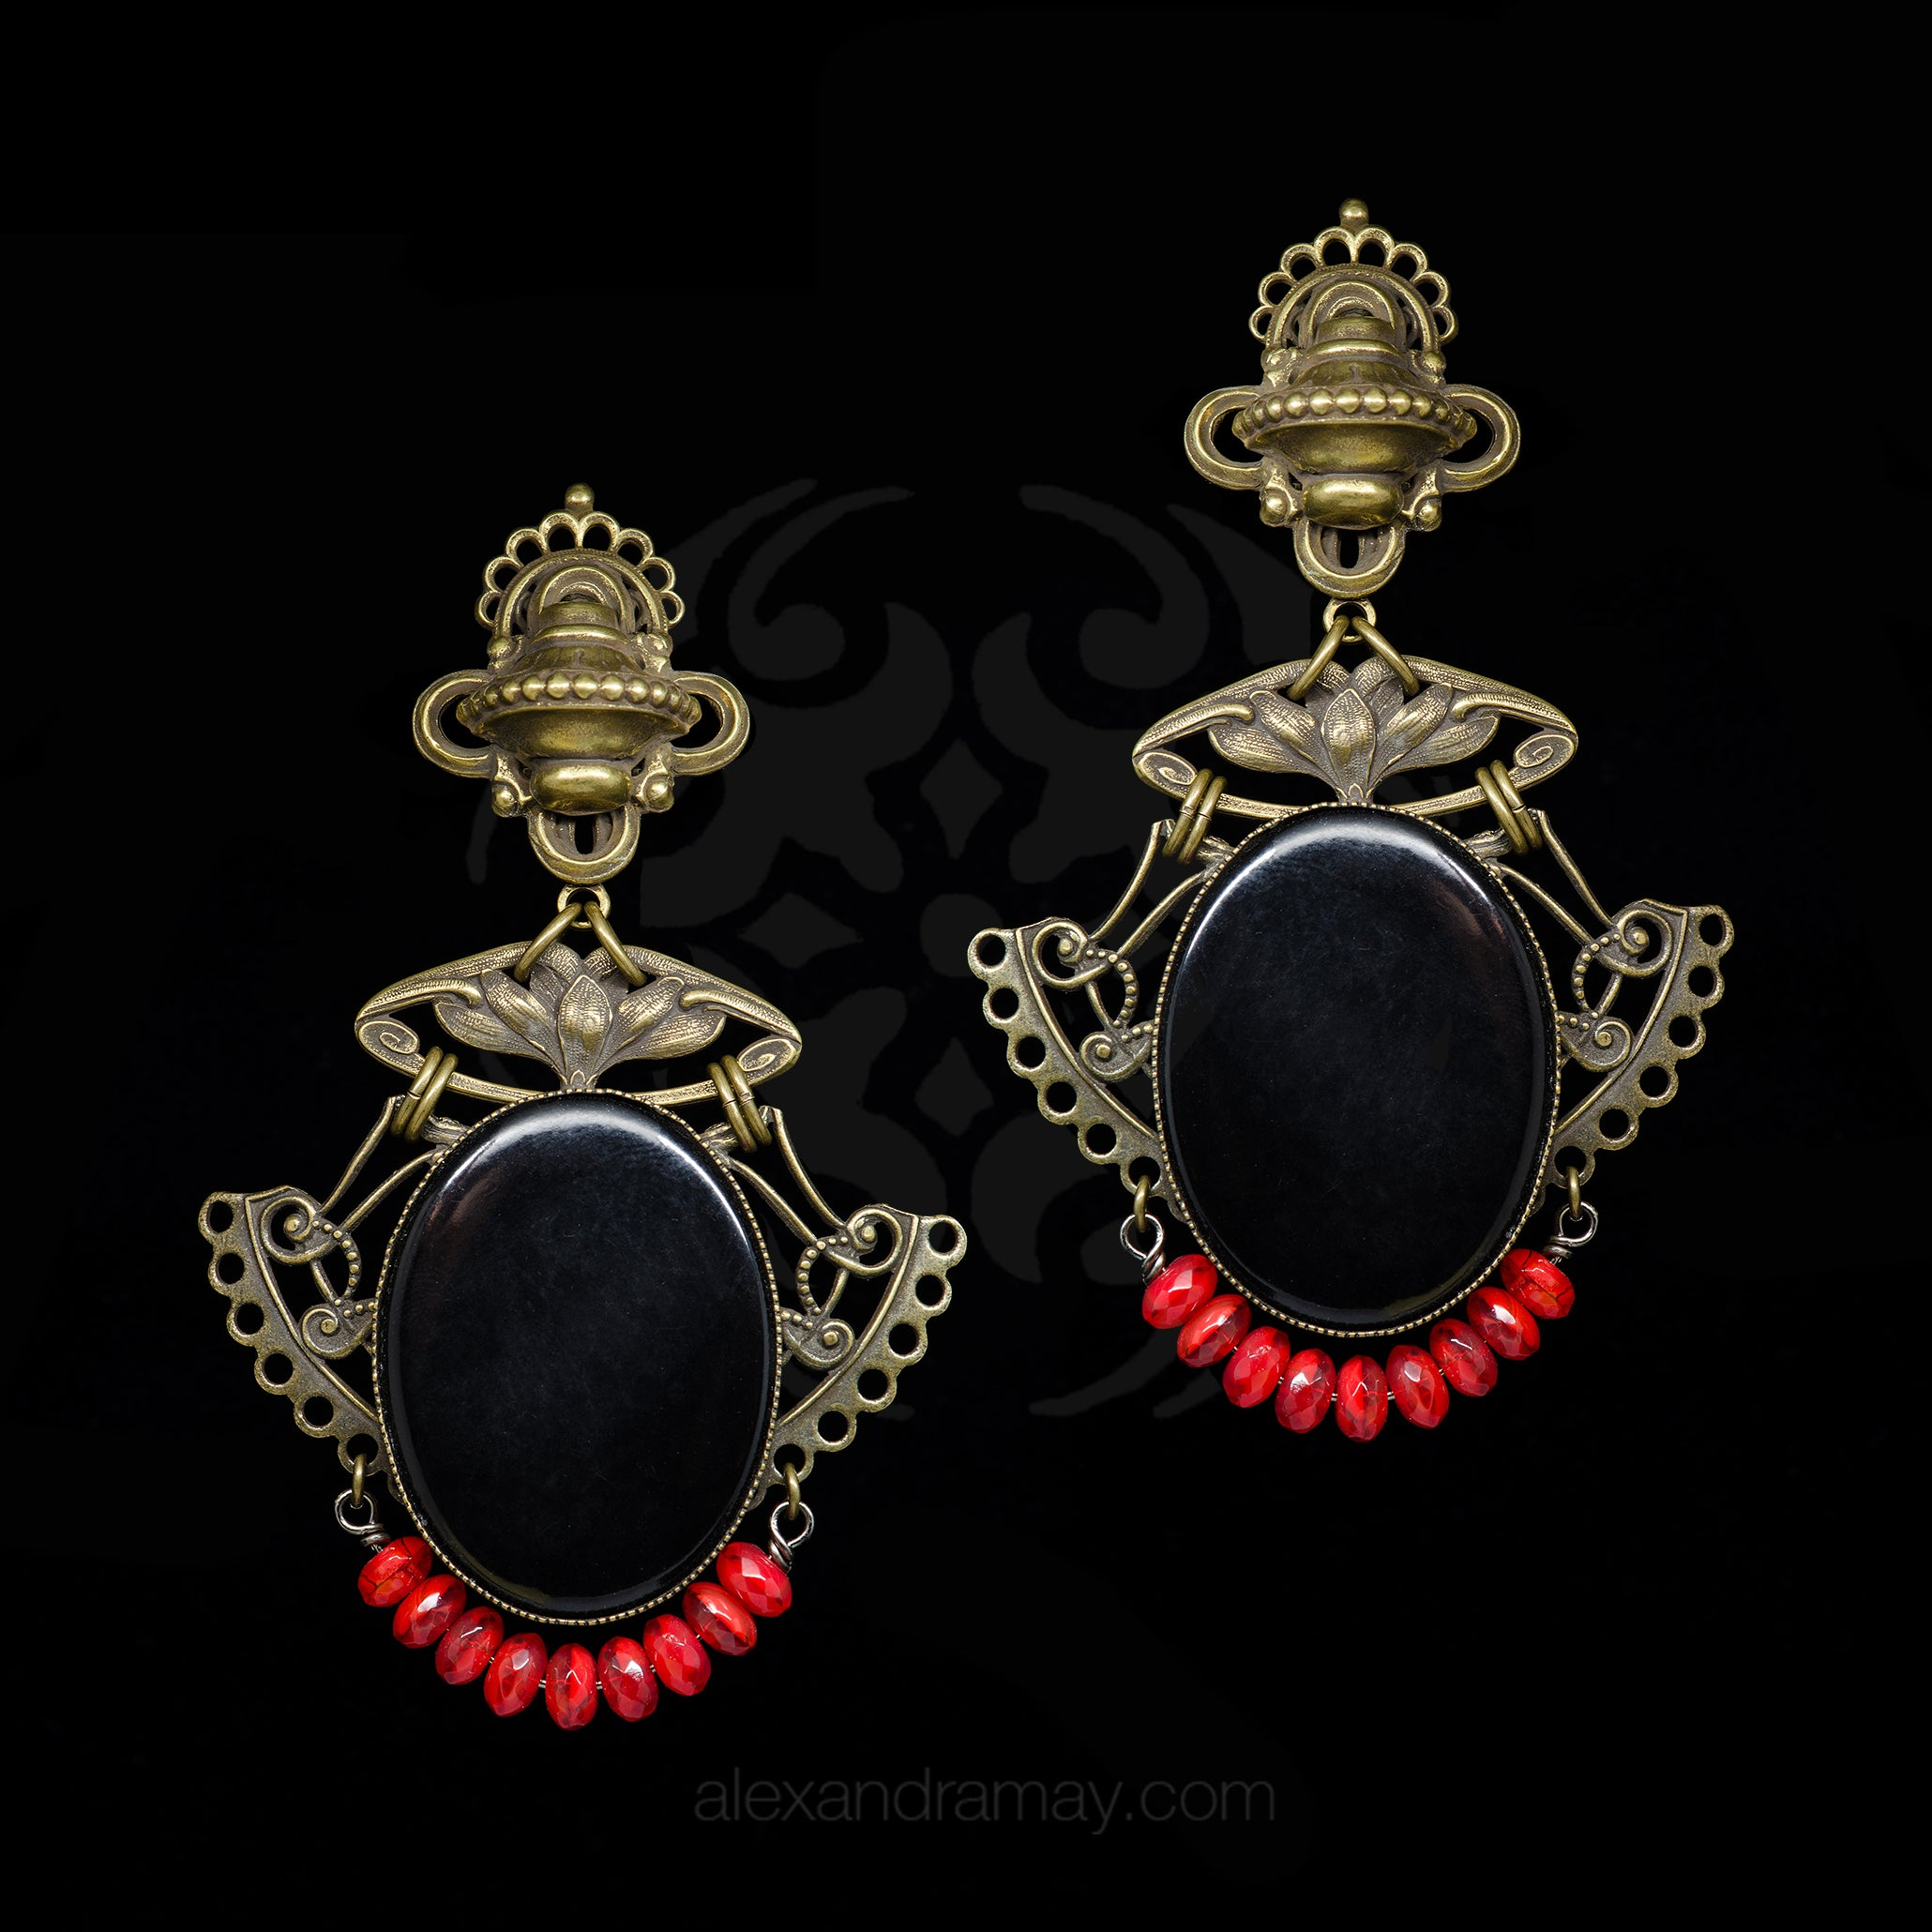 Jean Louis Blin Red and Black Bronzed Nouveau Clip-on Earrings (JLB7181) Front